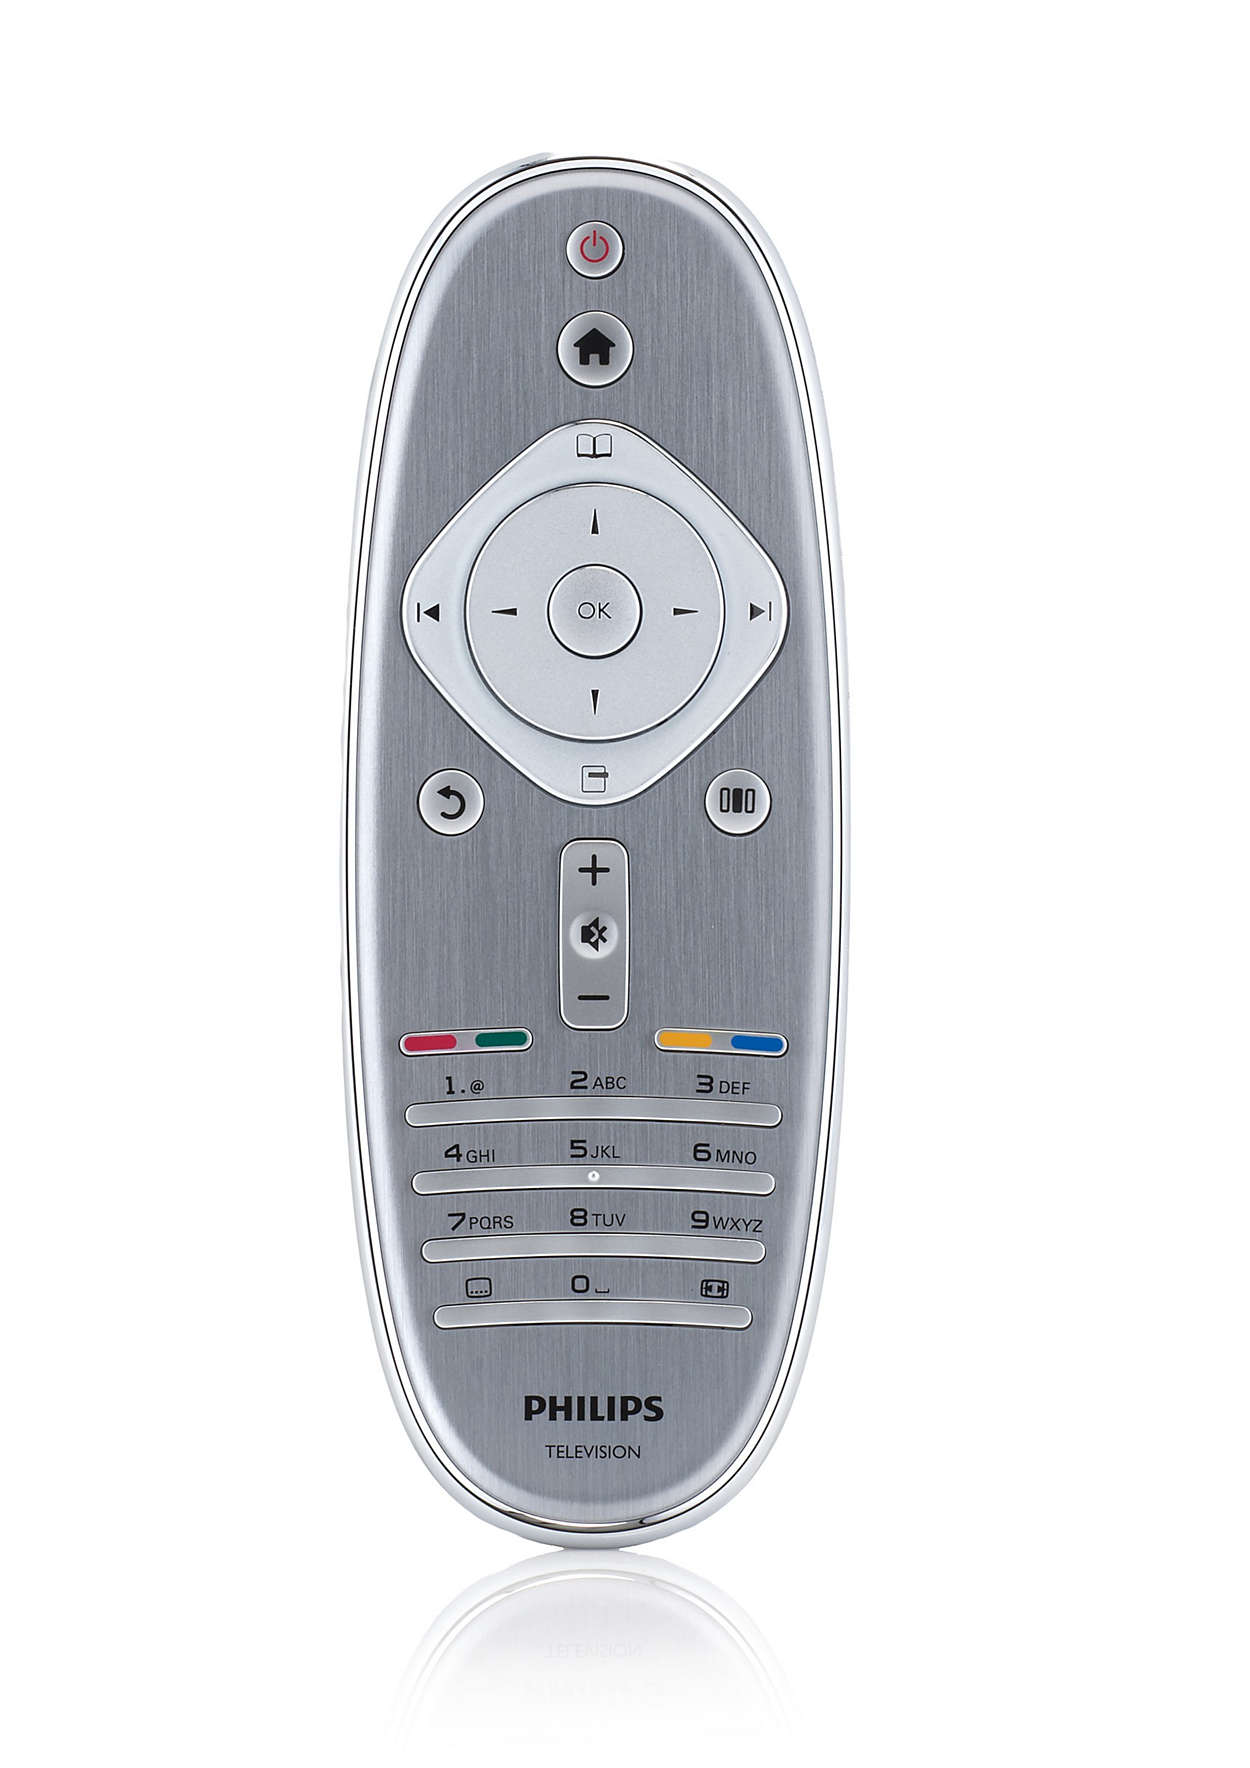 remote control crp600 01 philips. Black Bedroom Furniture Sets. Home Design Ideas